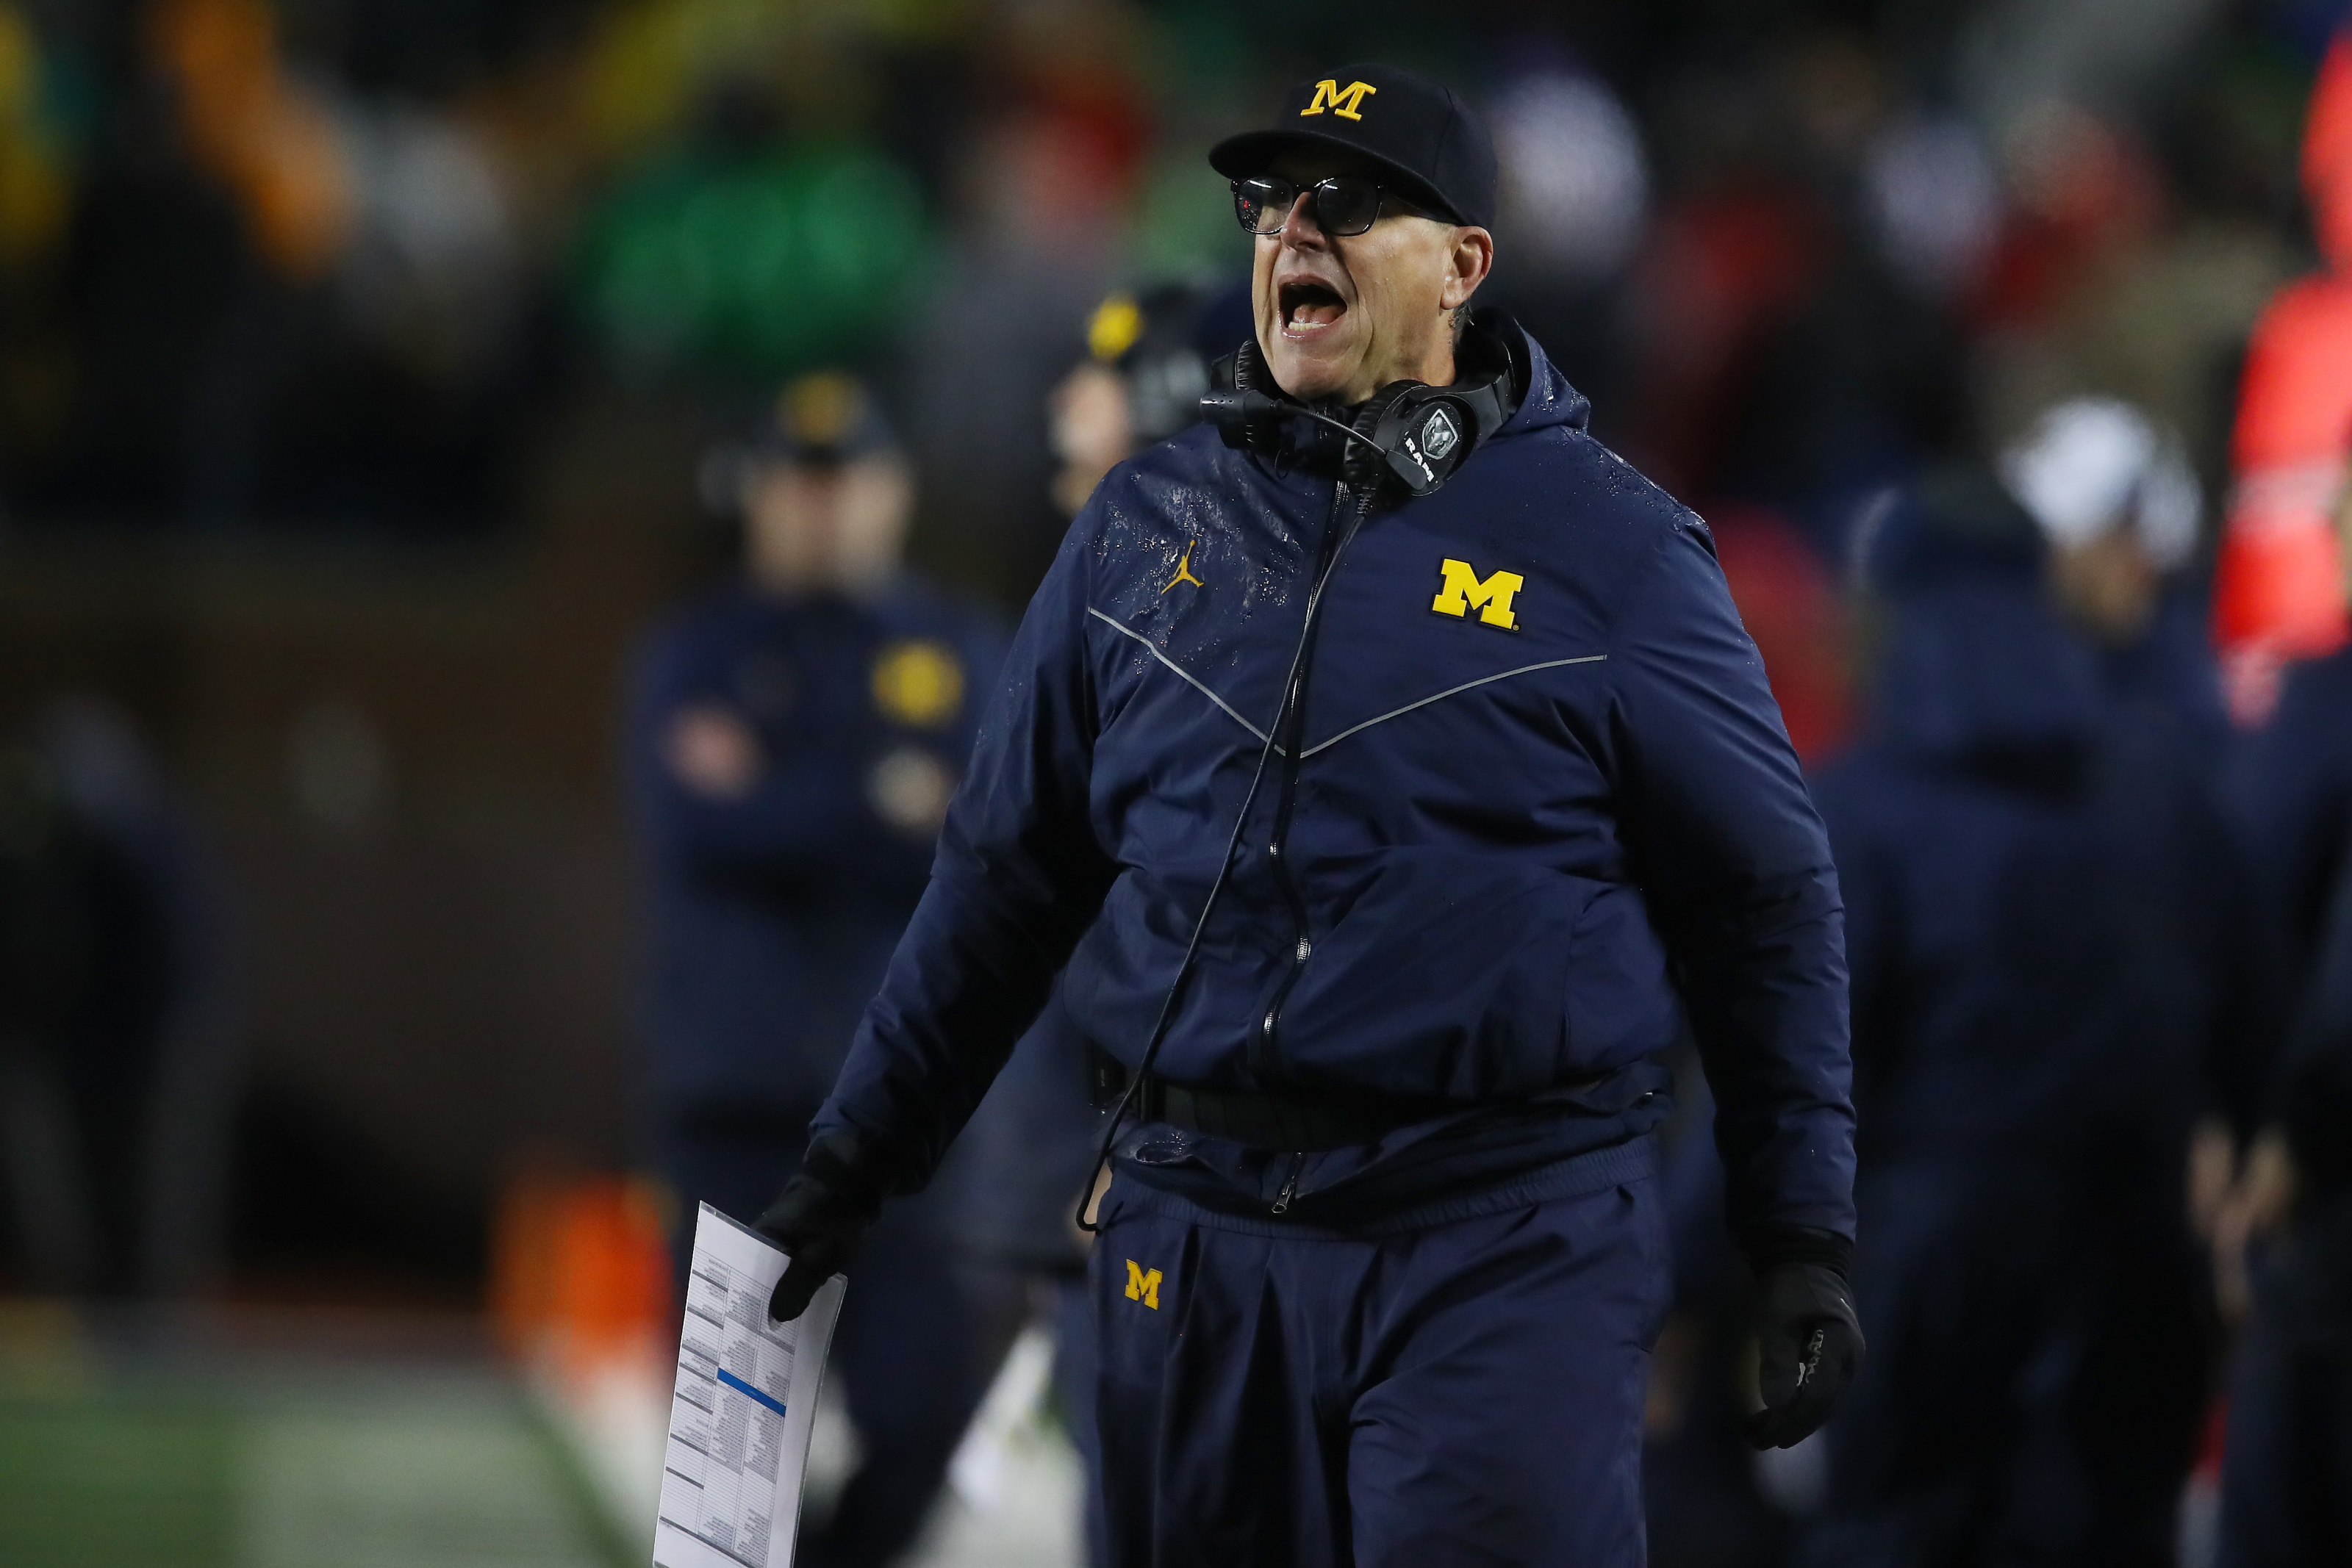 Michigan Football: 4-star Louis Hansen could be best option at TE